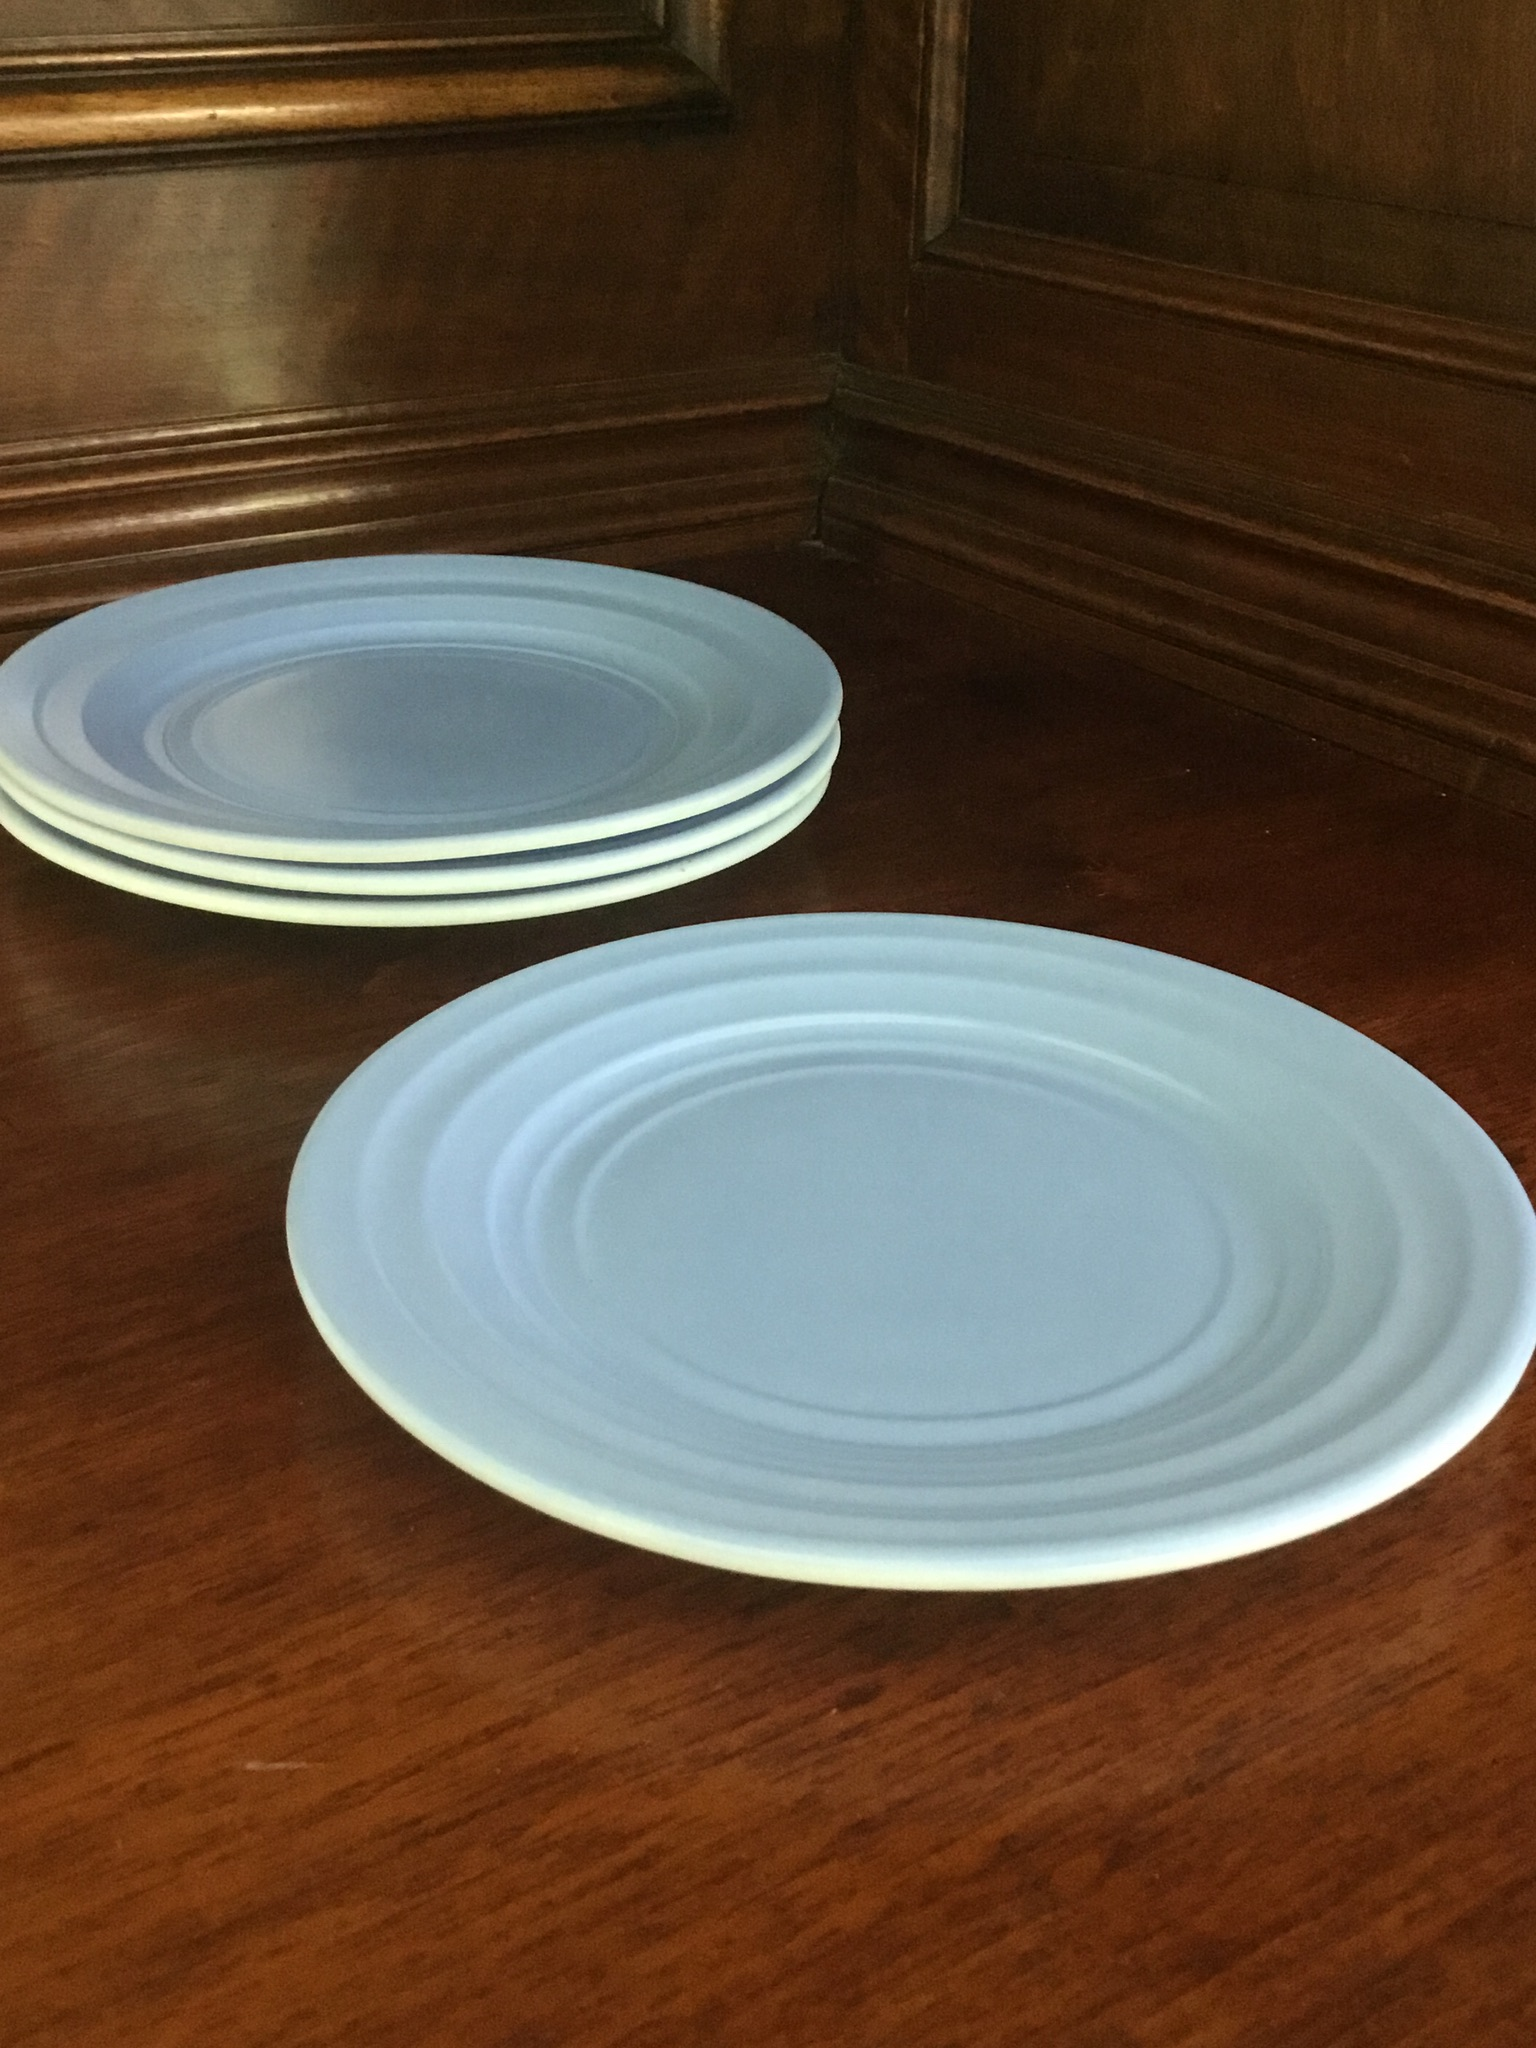 Moderntone Pastel Blue Bread and Butter Plates, Set of 4